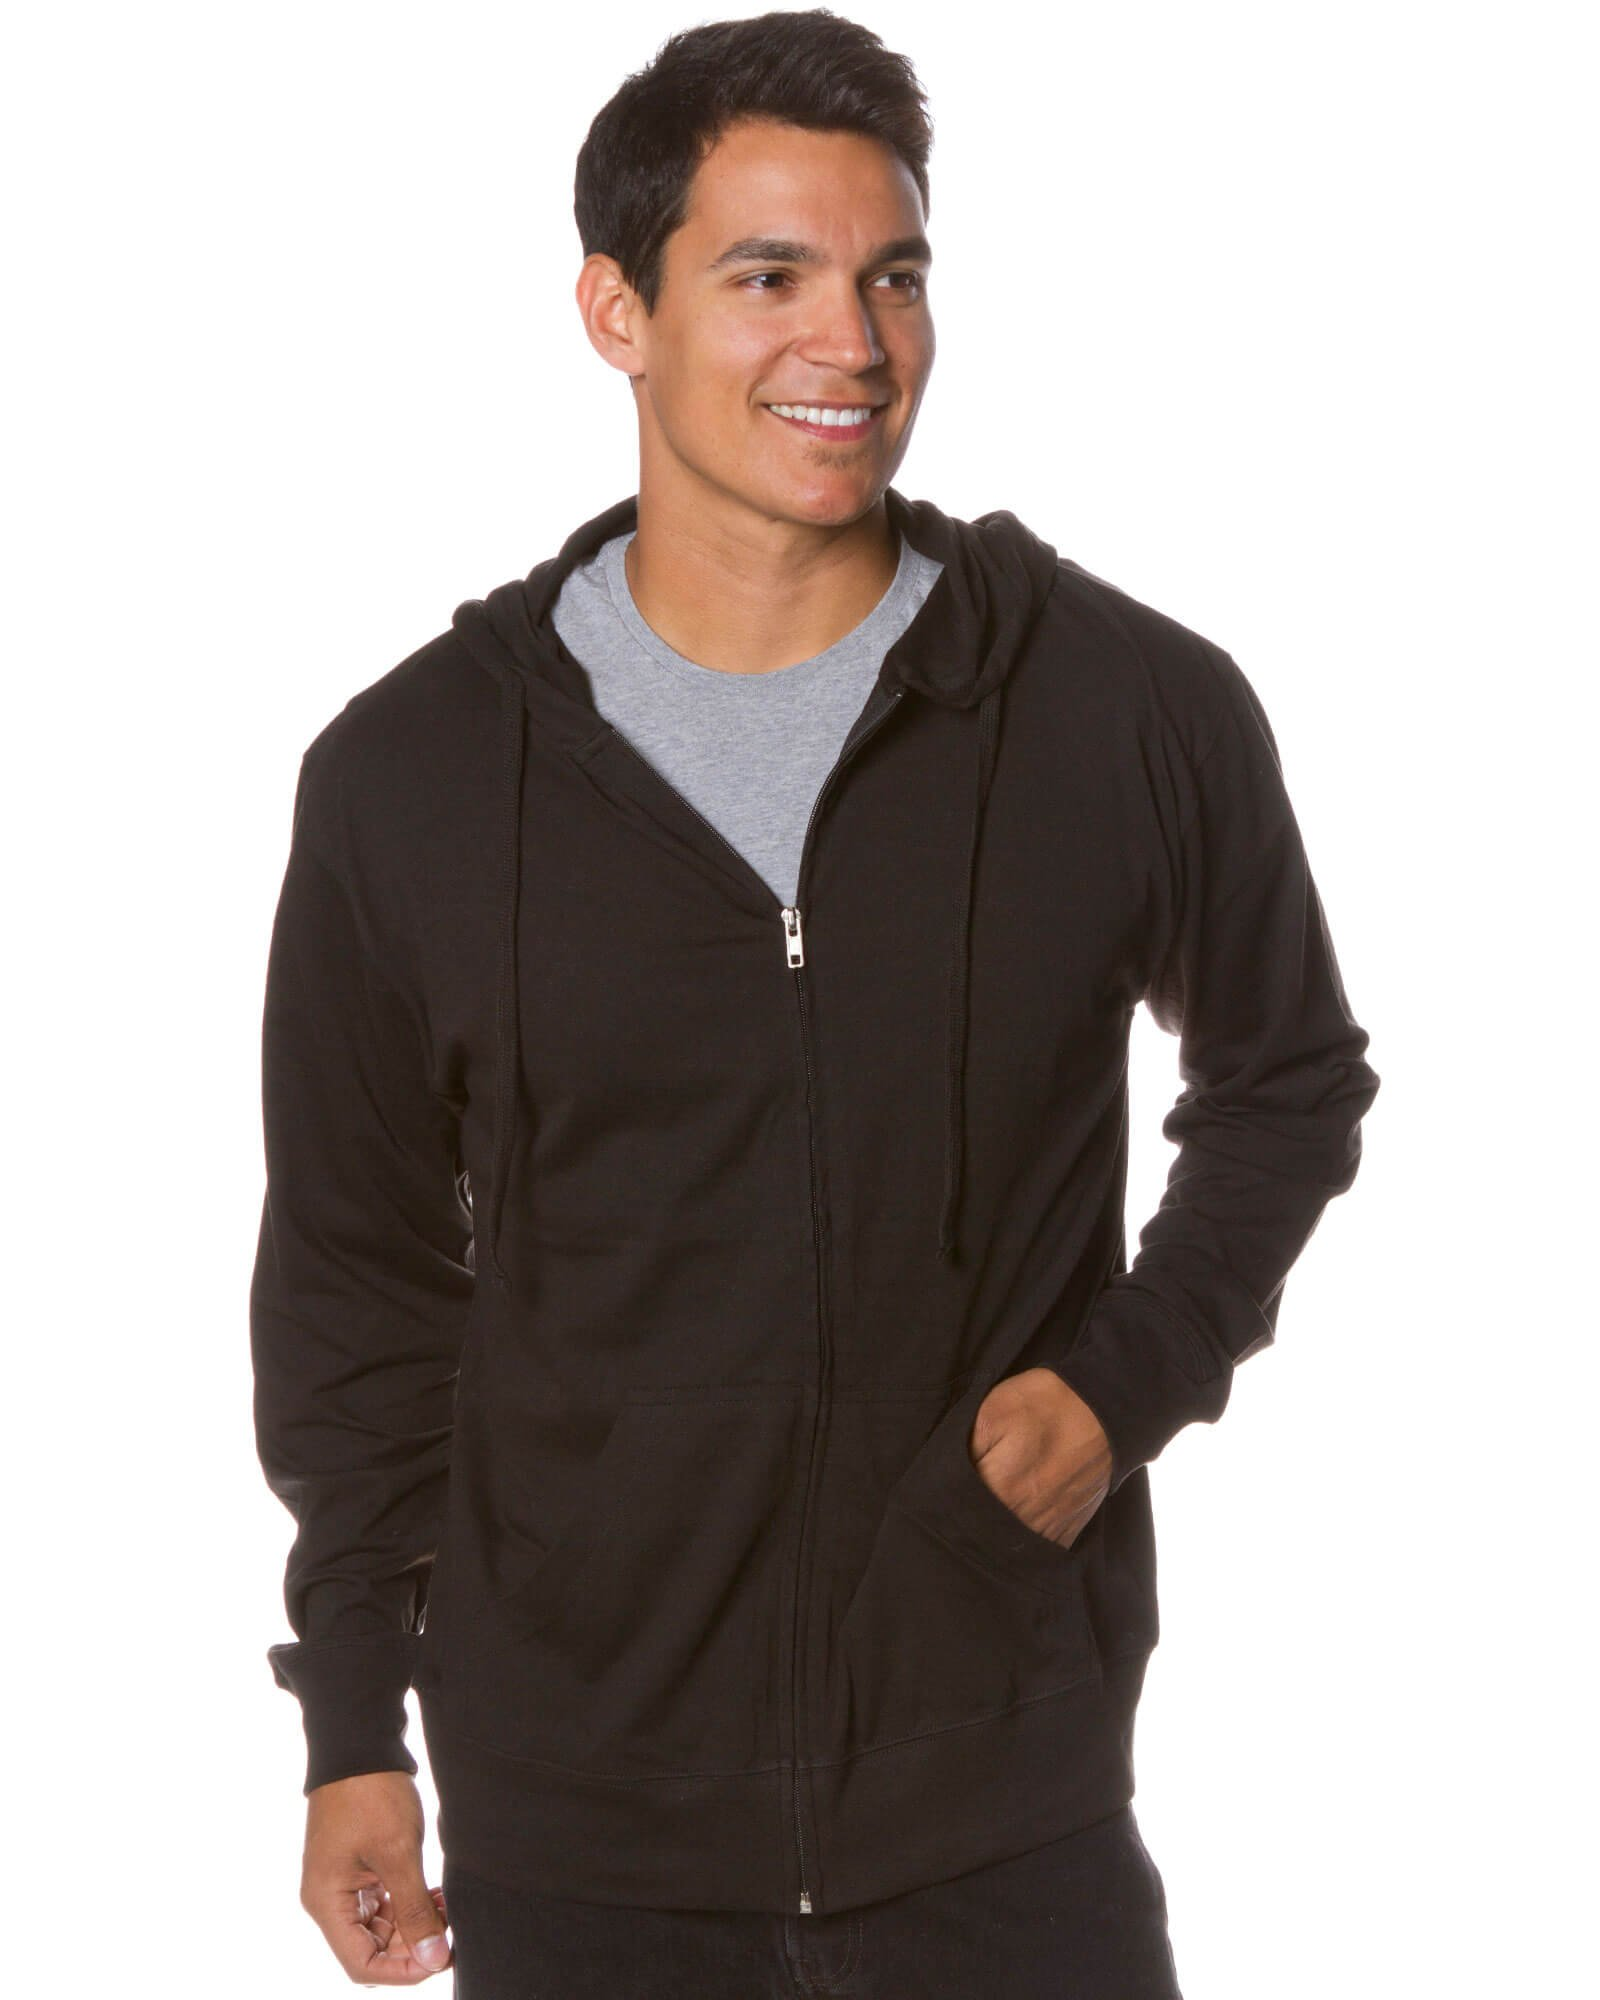 Global Men's Lightweight T-Shirt Jersey Full Zip up Hoodie Sweatshirt M Black